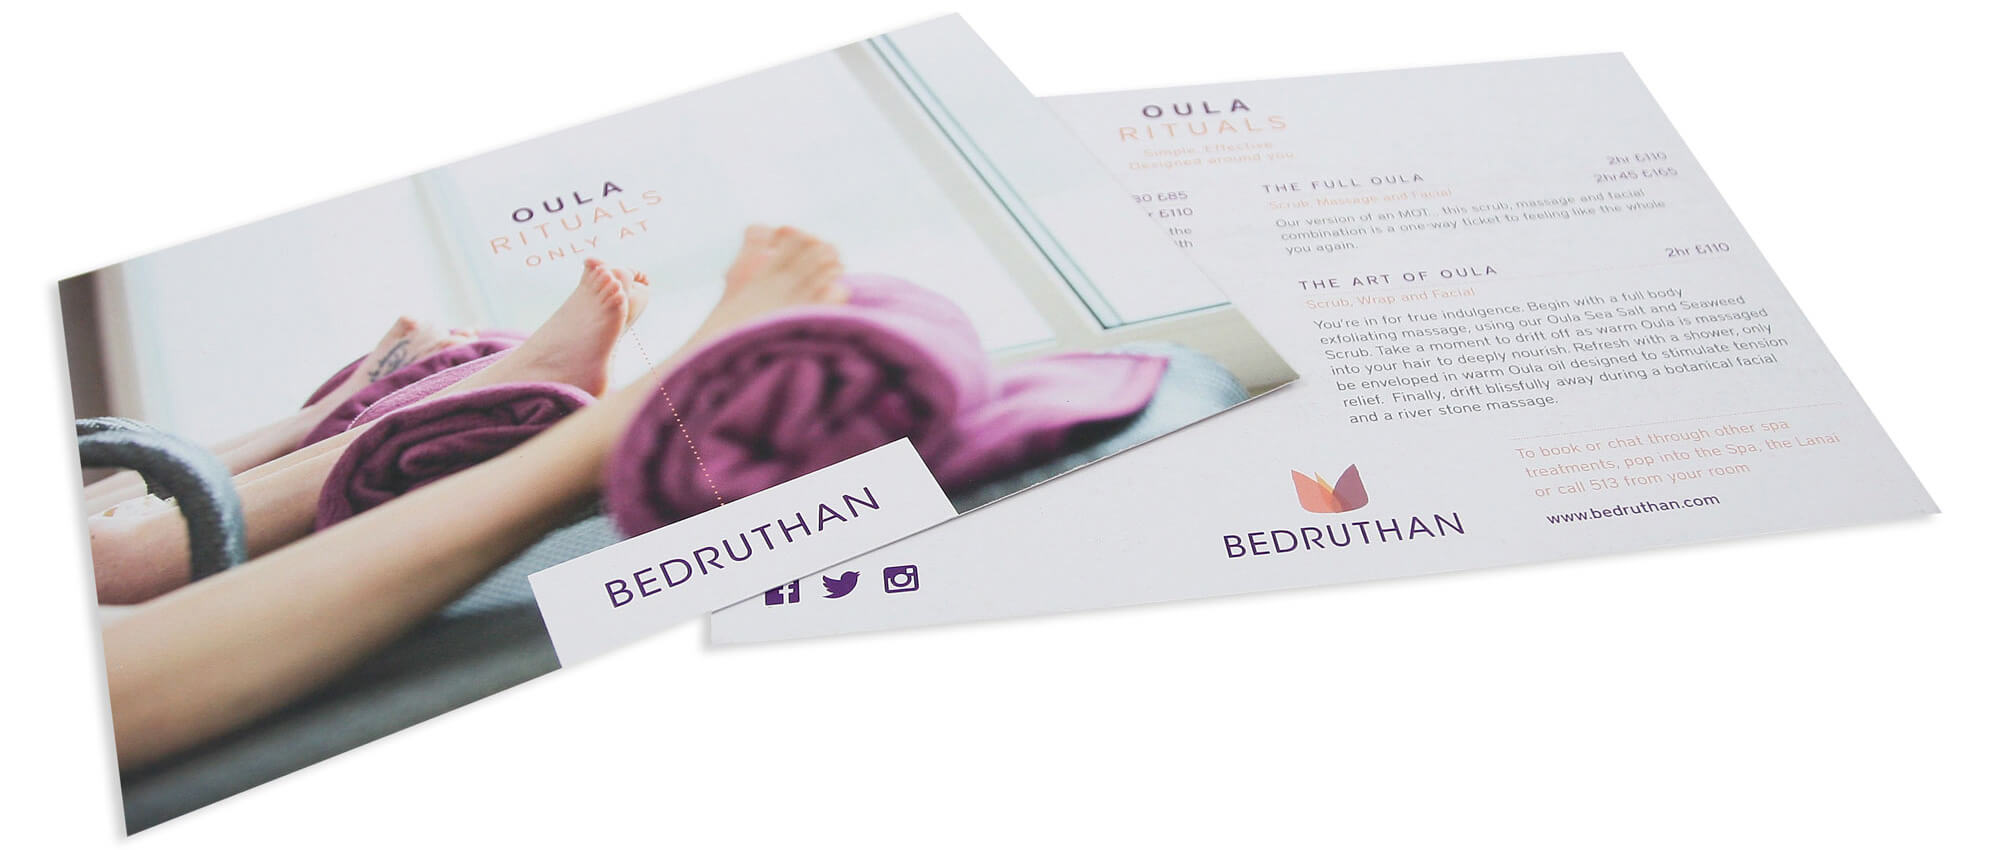 Bedruthan-Hotel-Spa-Flyer-Design